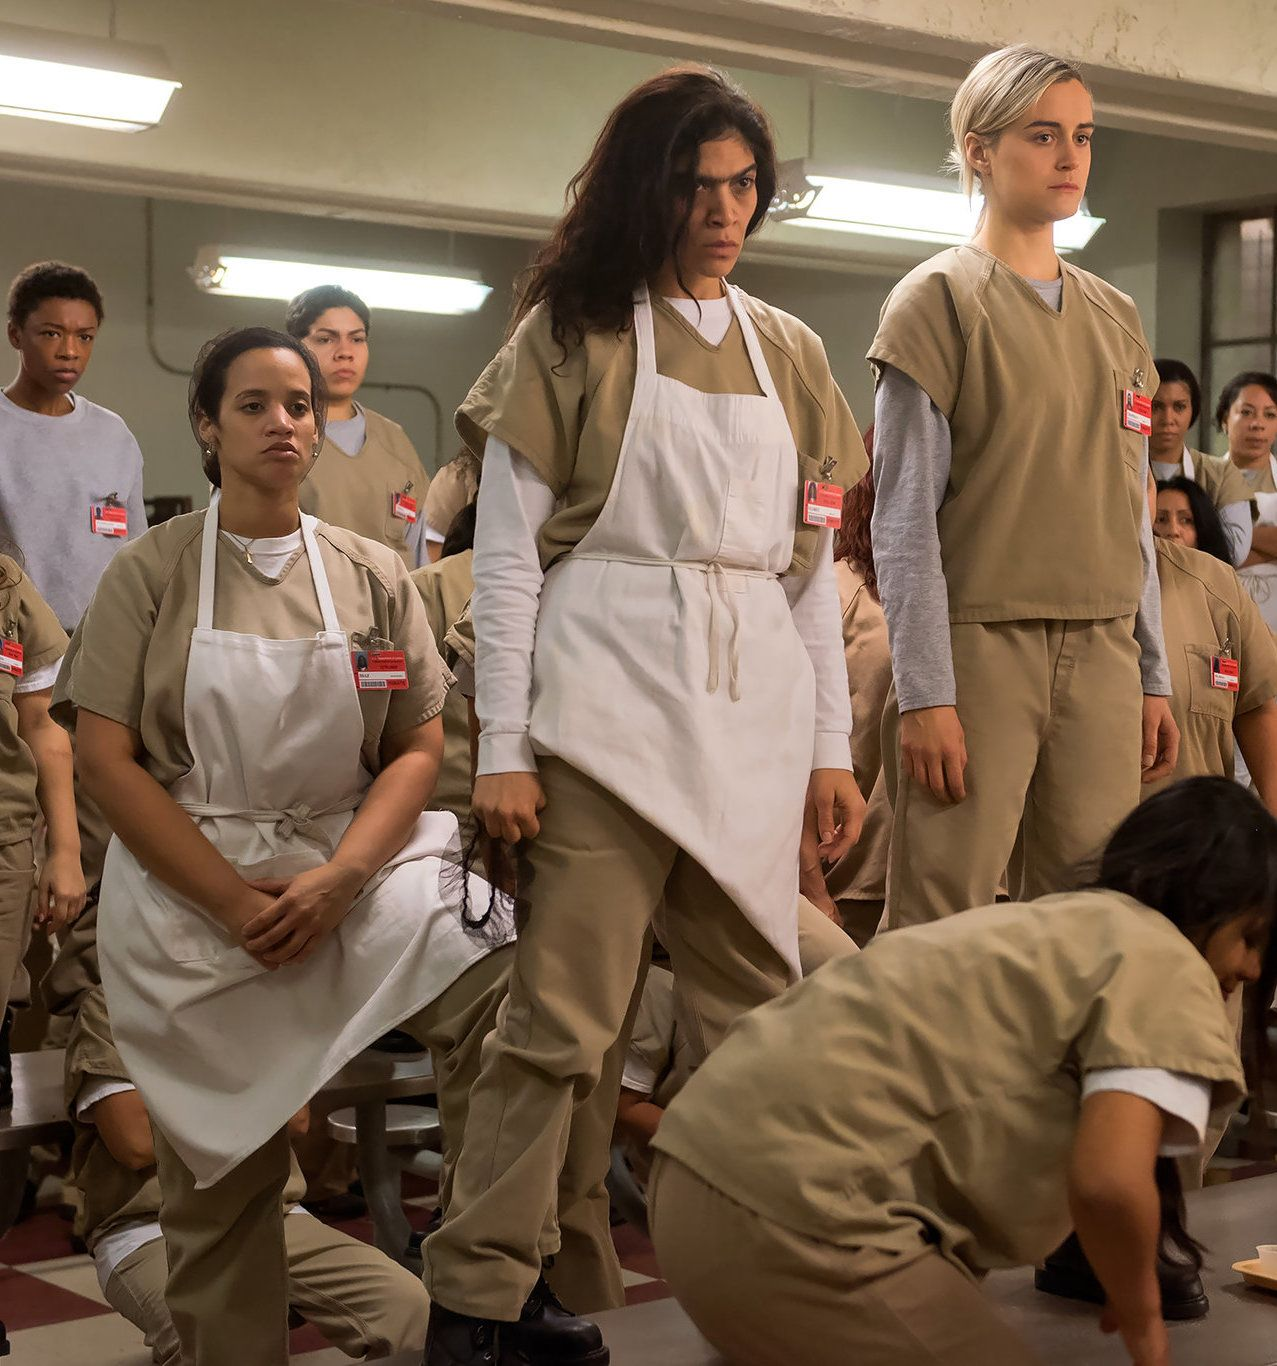 08oitnb slide 7JJY superJumbo 25 Things You Didn't Know About Orange Is The New Black